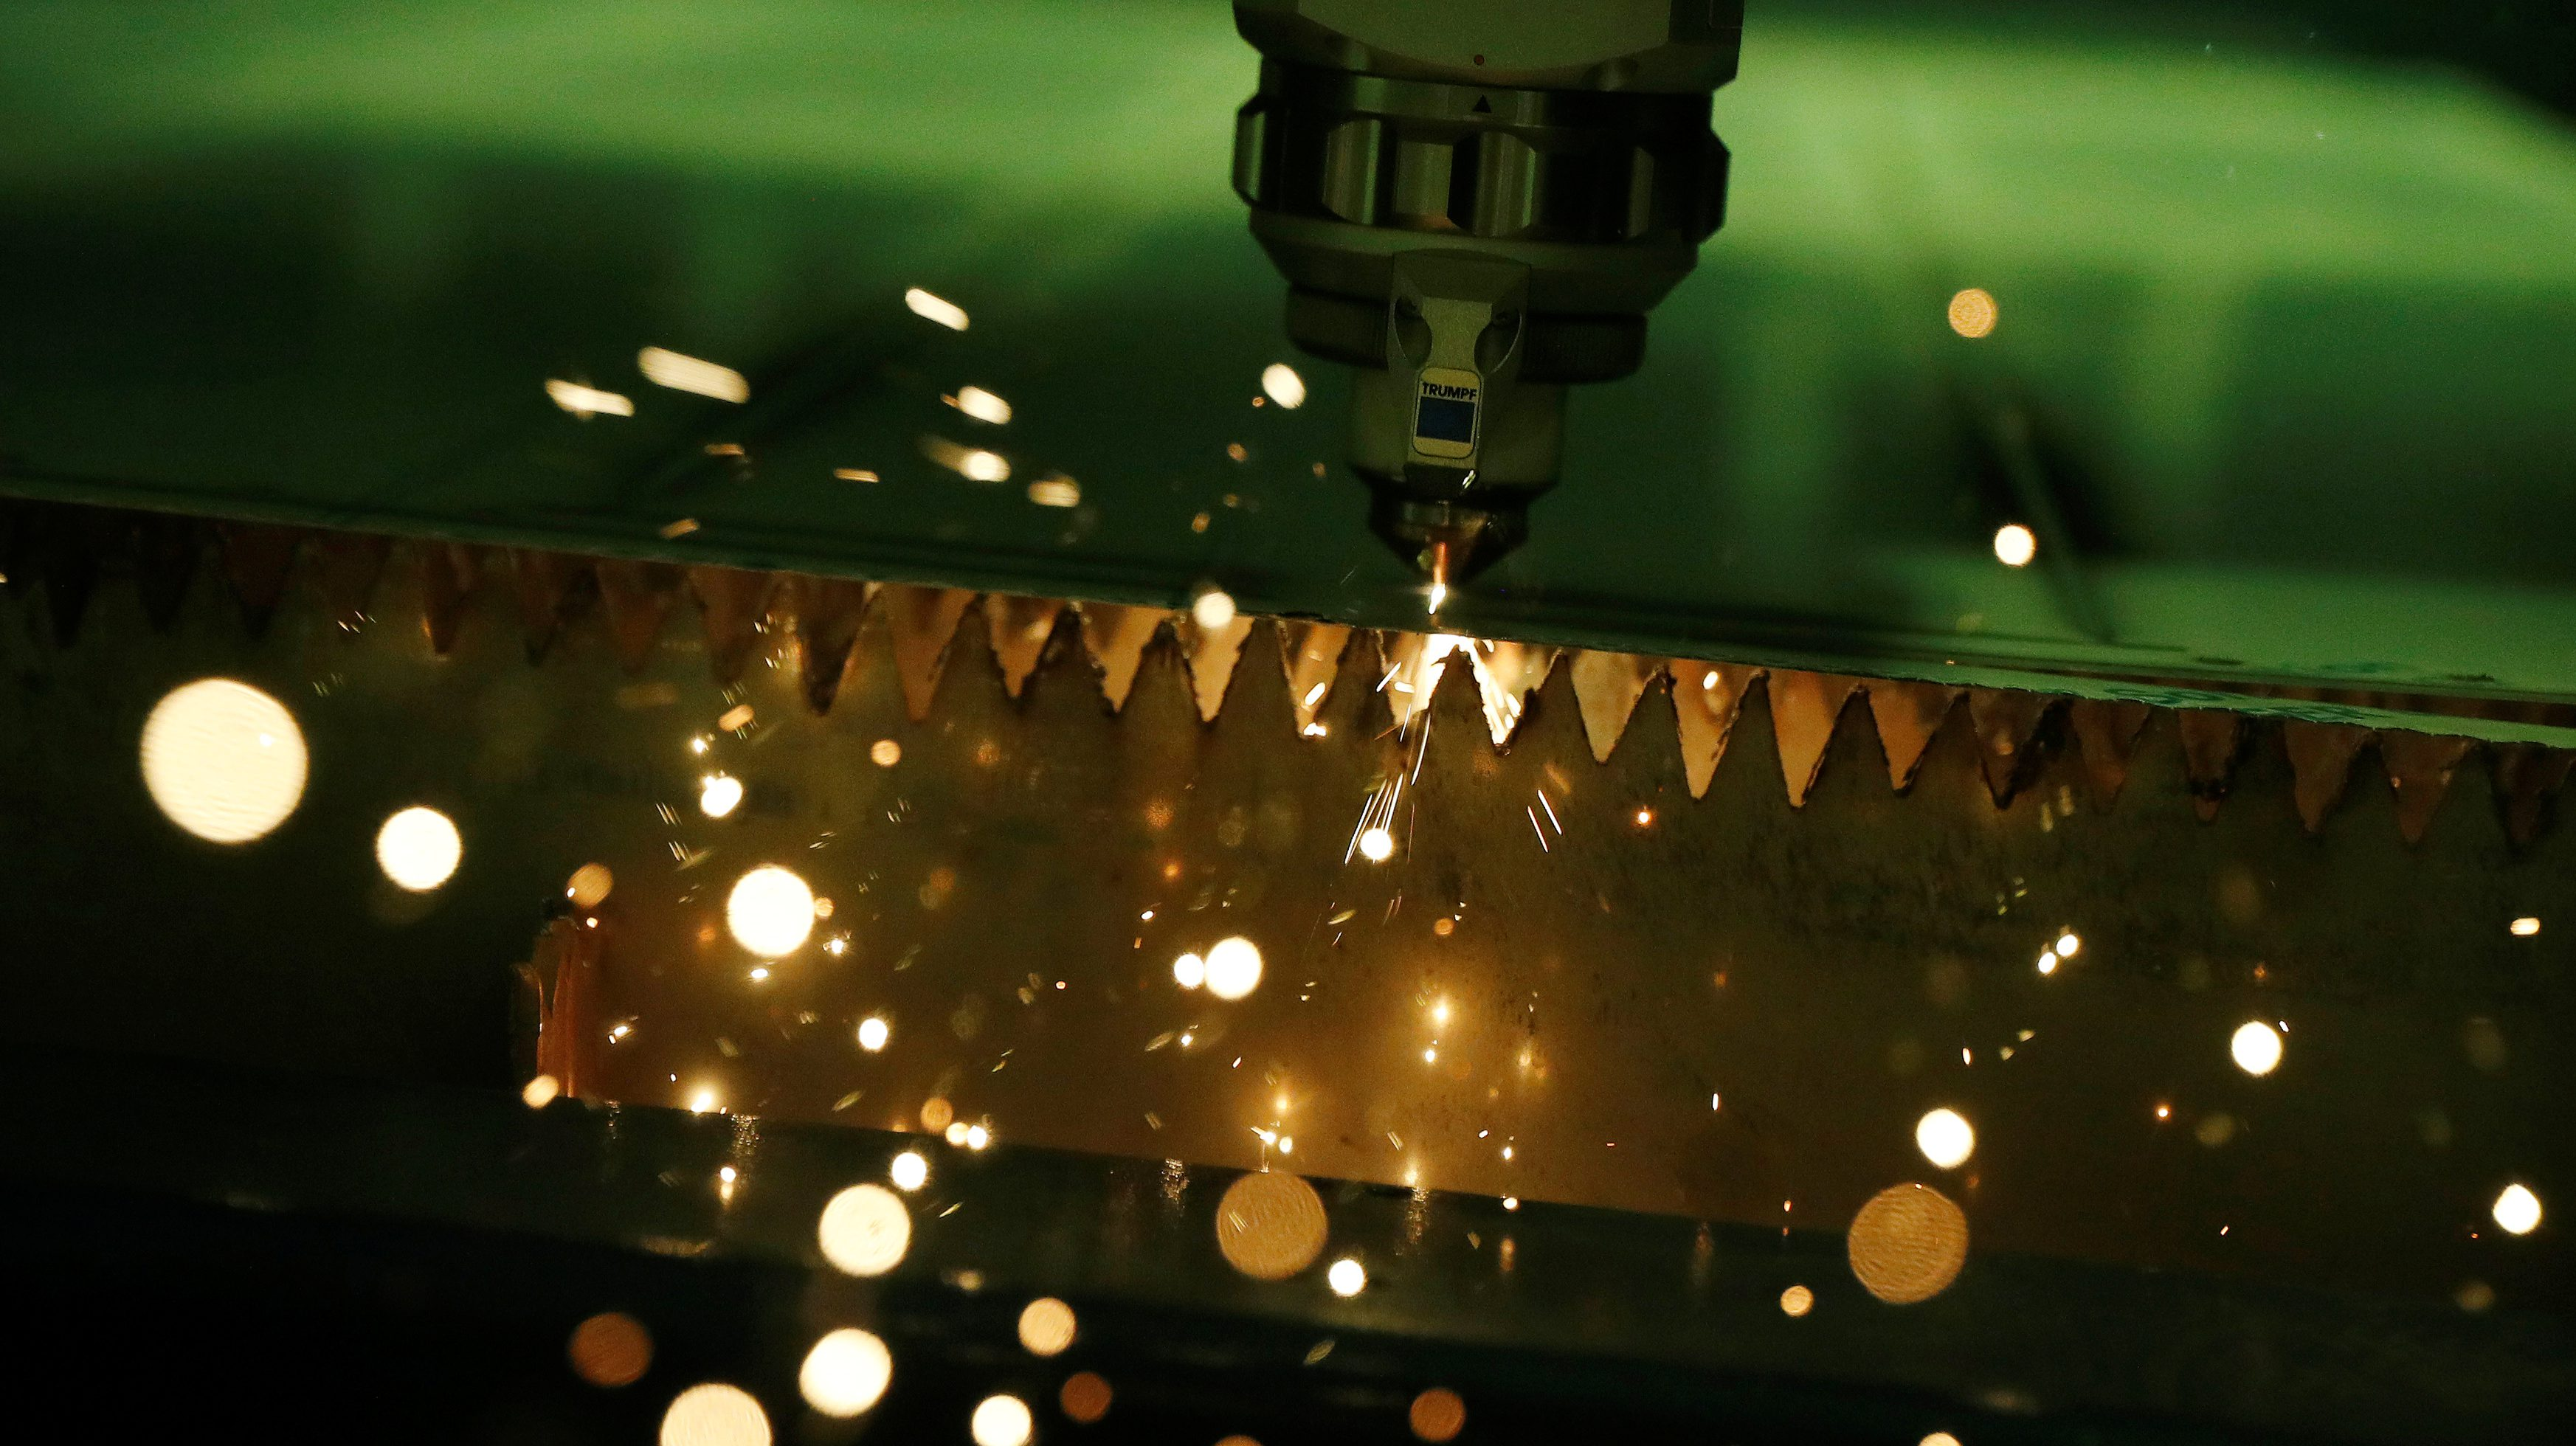 A laser cutter produces sparks as it cuts a sheet of steel into components at the Mec Com Ltd factory near Stafford, central England December 15, 2016. Picture taken December 15, 2016.